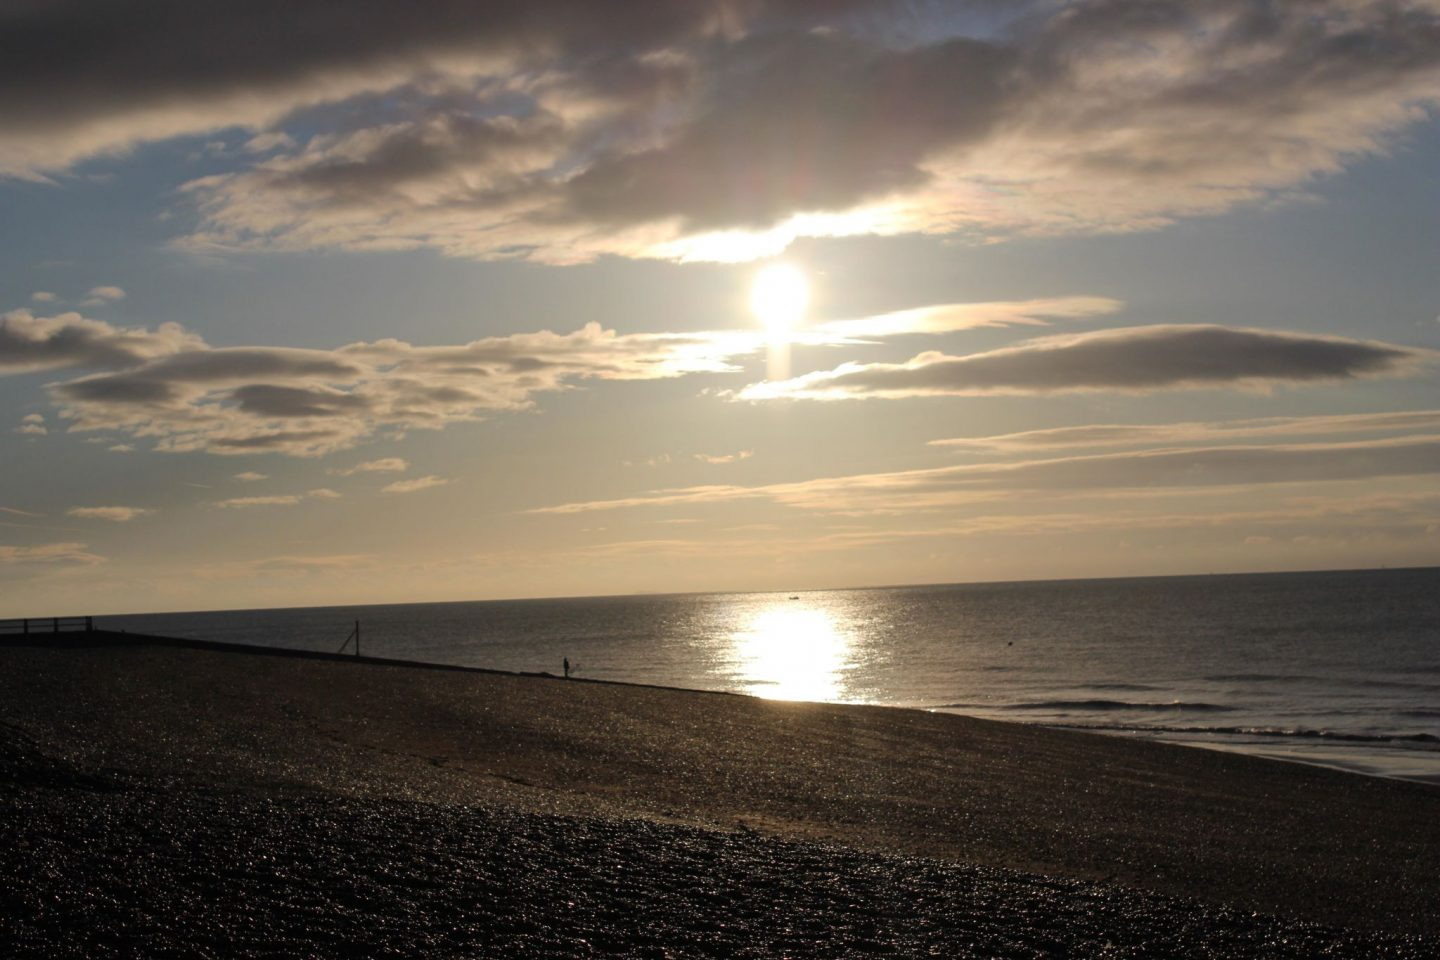 Hastings beach, sunrise, hastings Sunrise, English coast, coast of England, photographer, Photography, dadbloguk, dadbloguk.com,